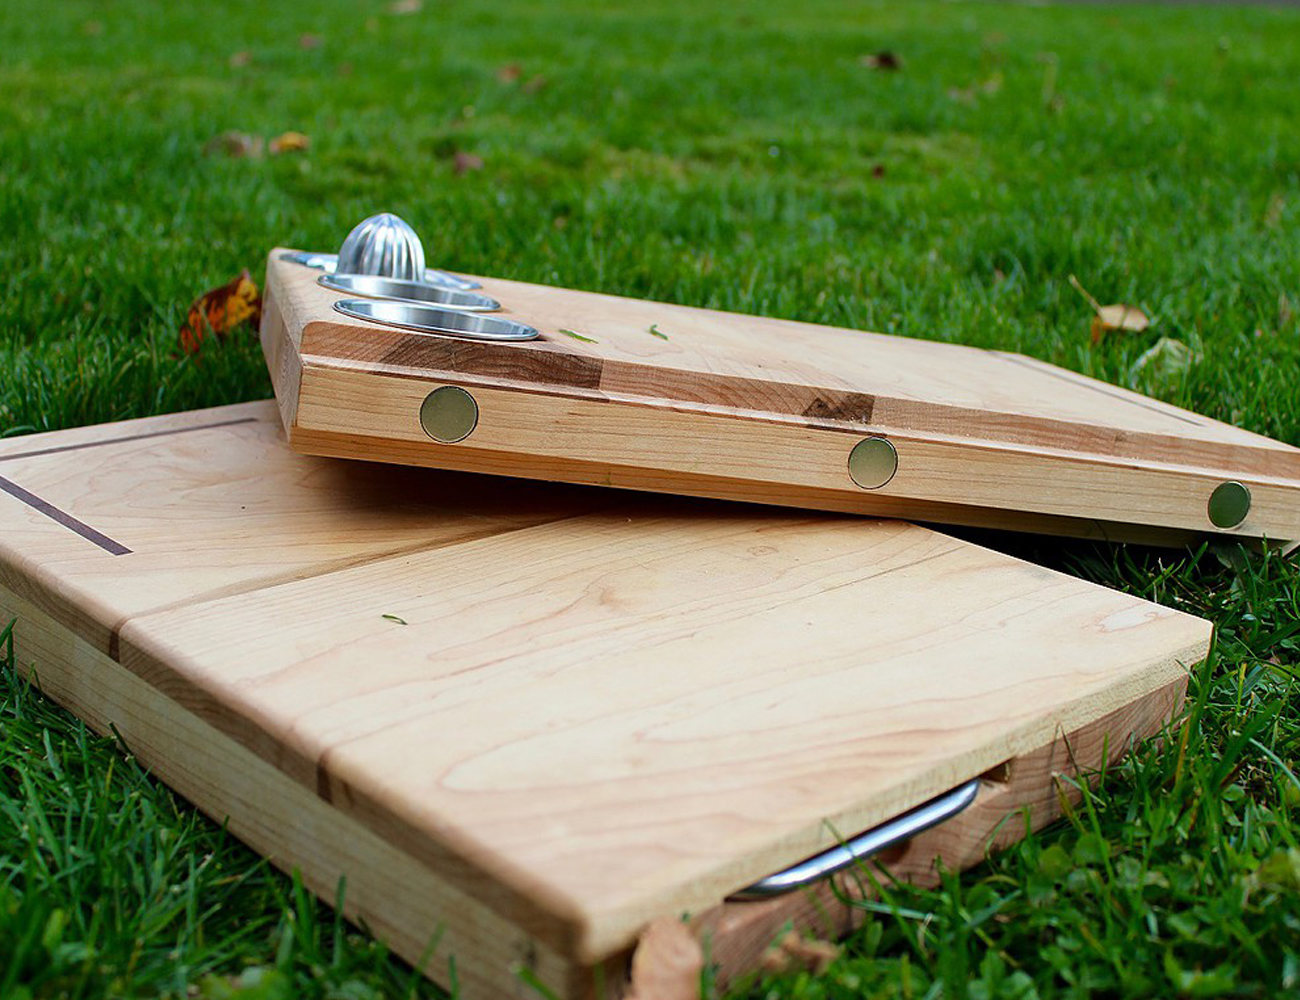 The Ultimate Cutting Board